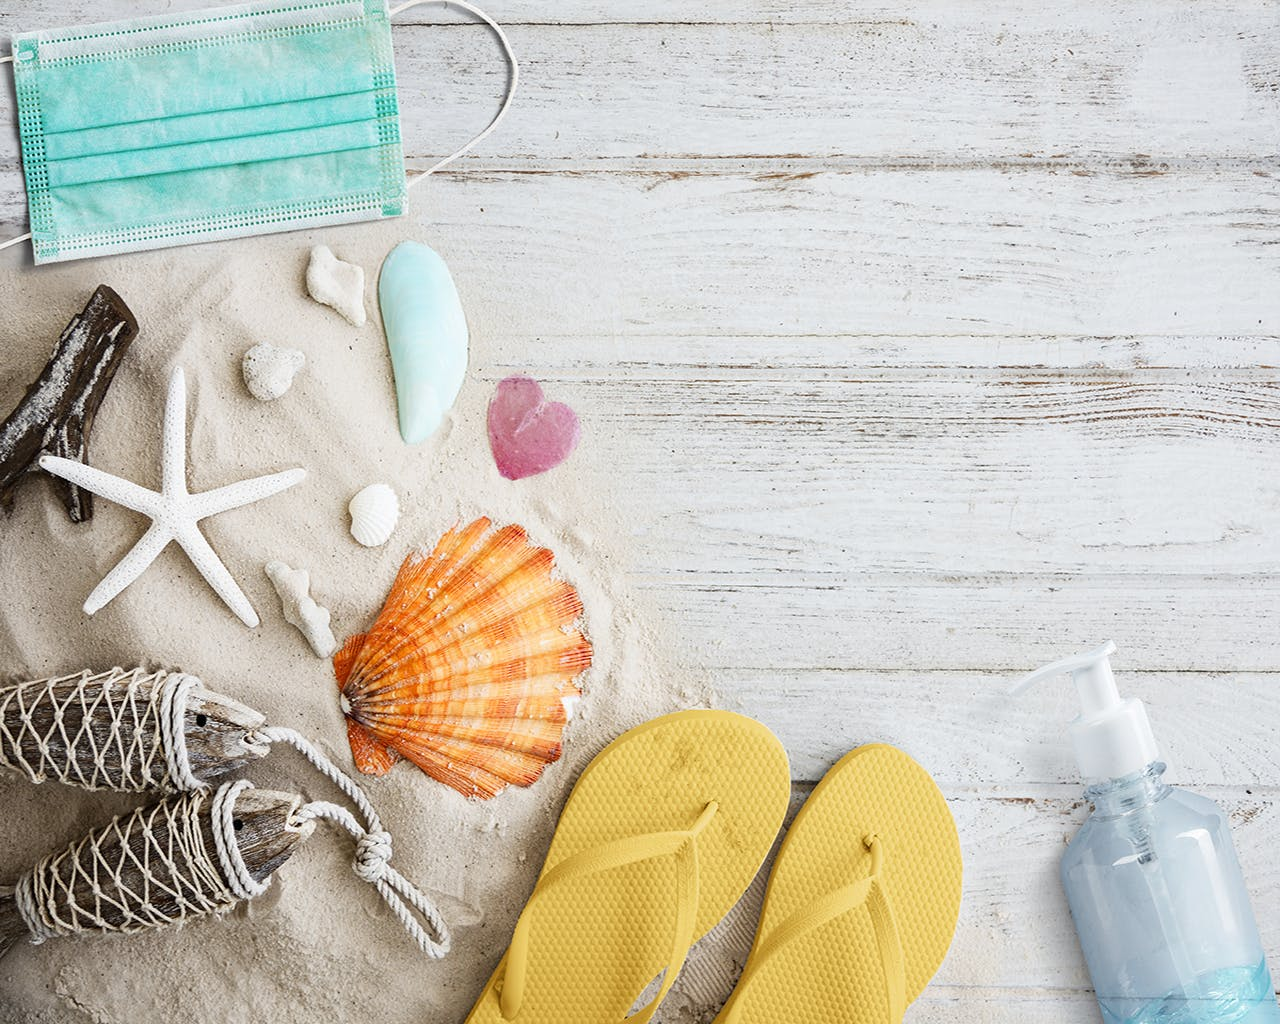 Self-sterilizing Pouch + 7 Other Travel Essentials You Shouldn't Leave Home Without In The New Normal